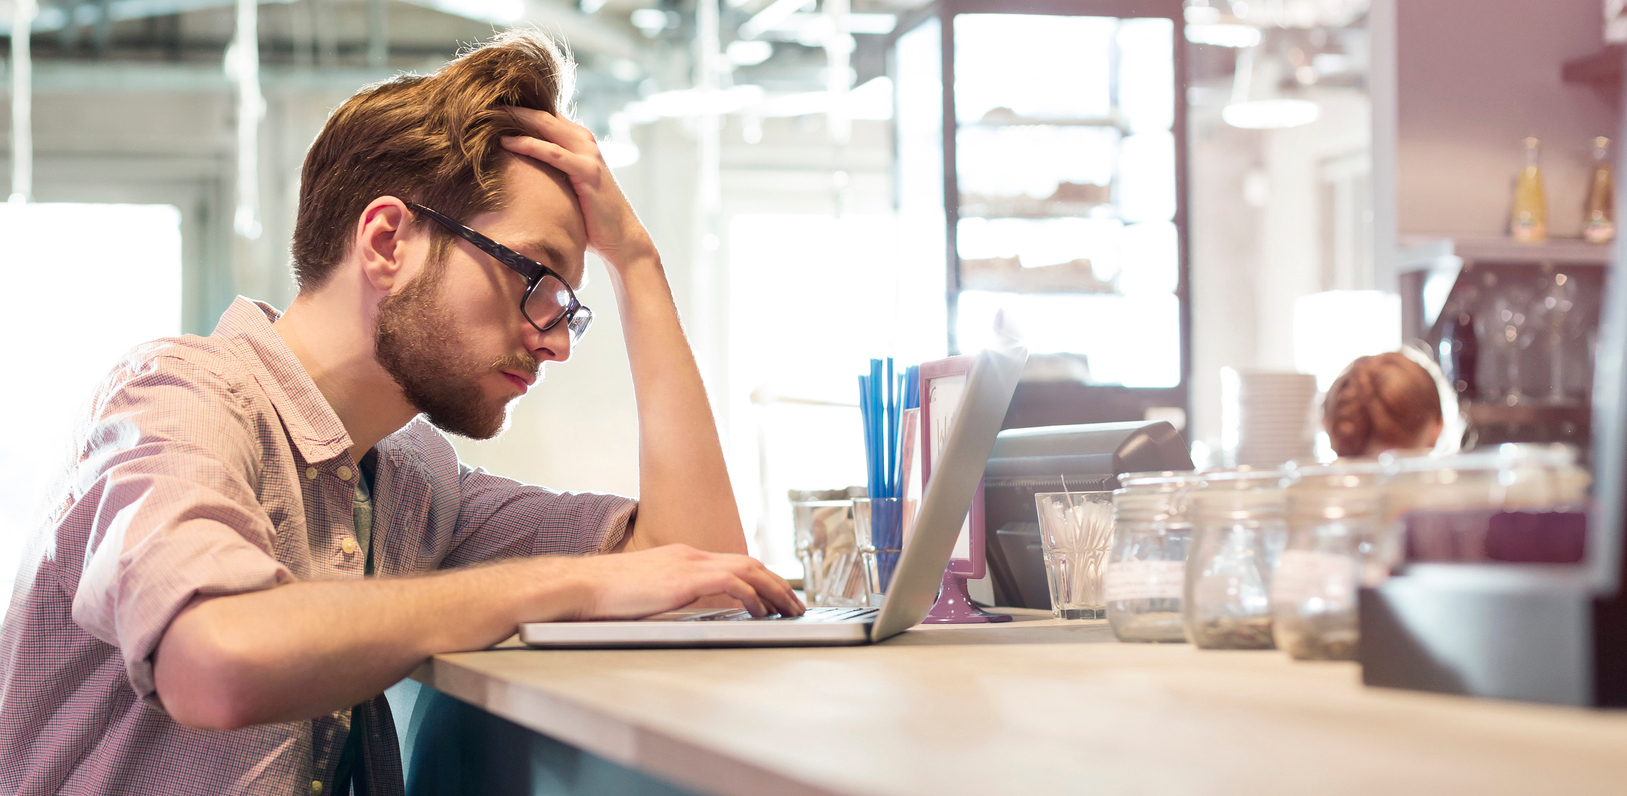 burnout articles the muse 3 questions to help you decide if you re having a bad week or about to burn out